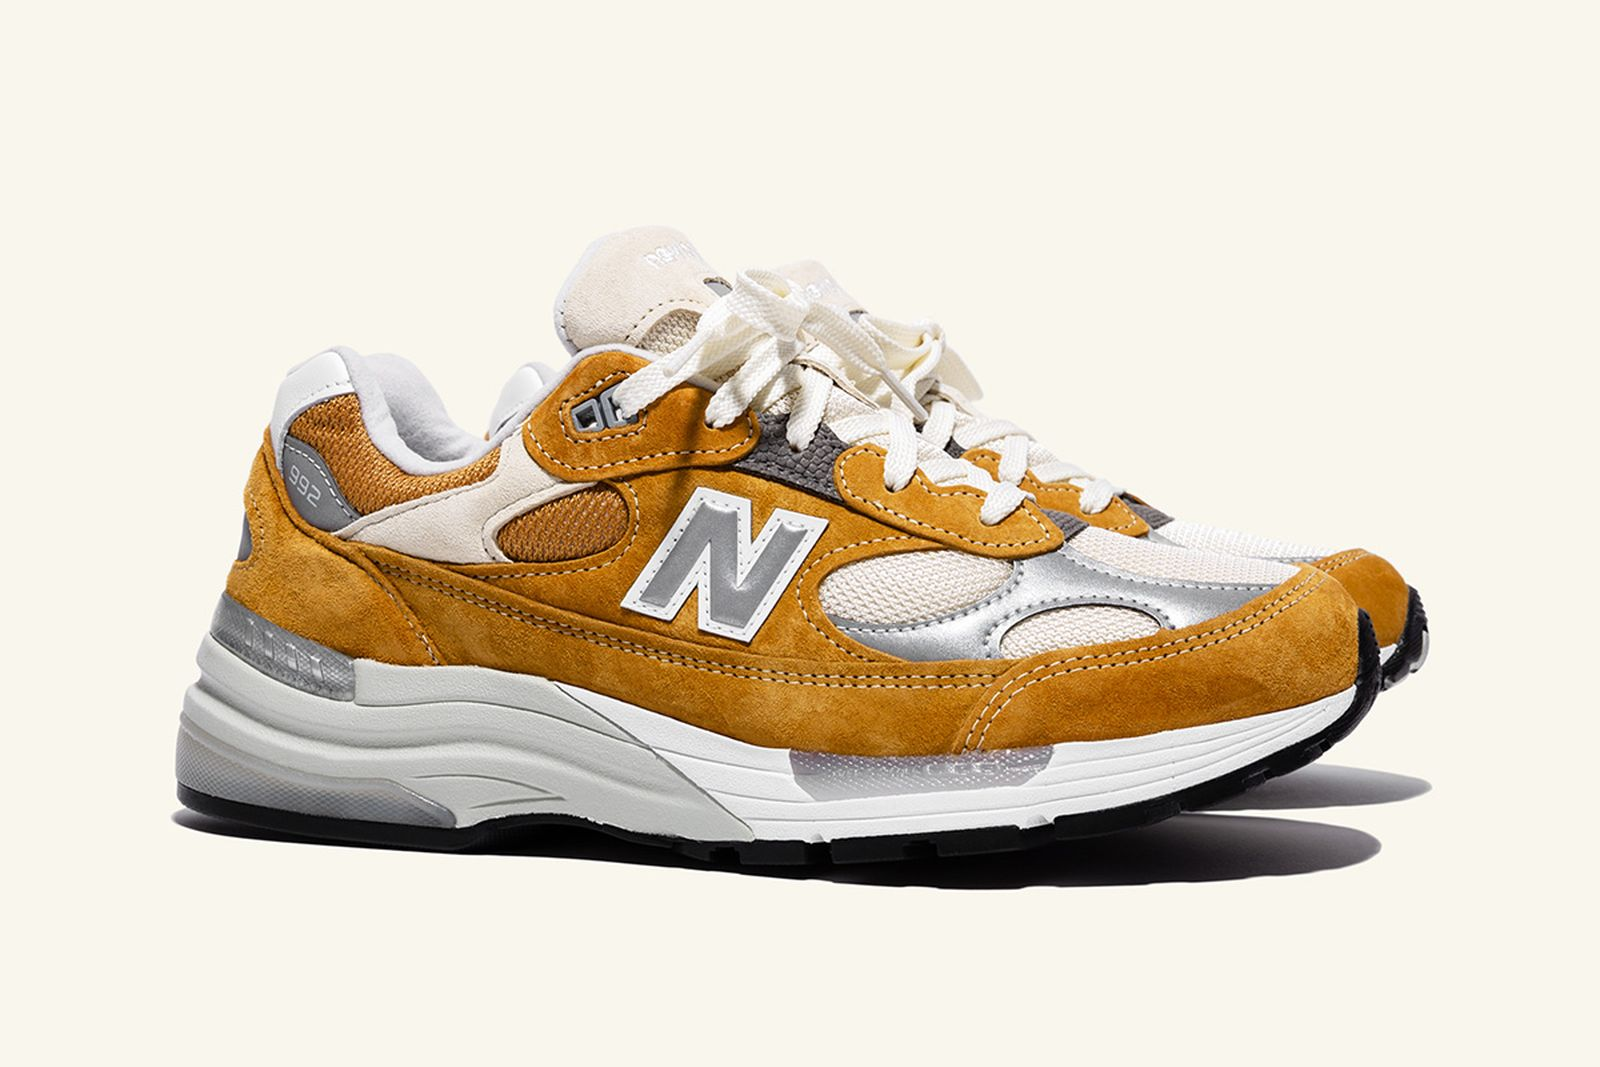 packer-new-balance-992-release-date-price-04